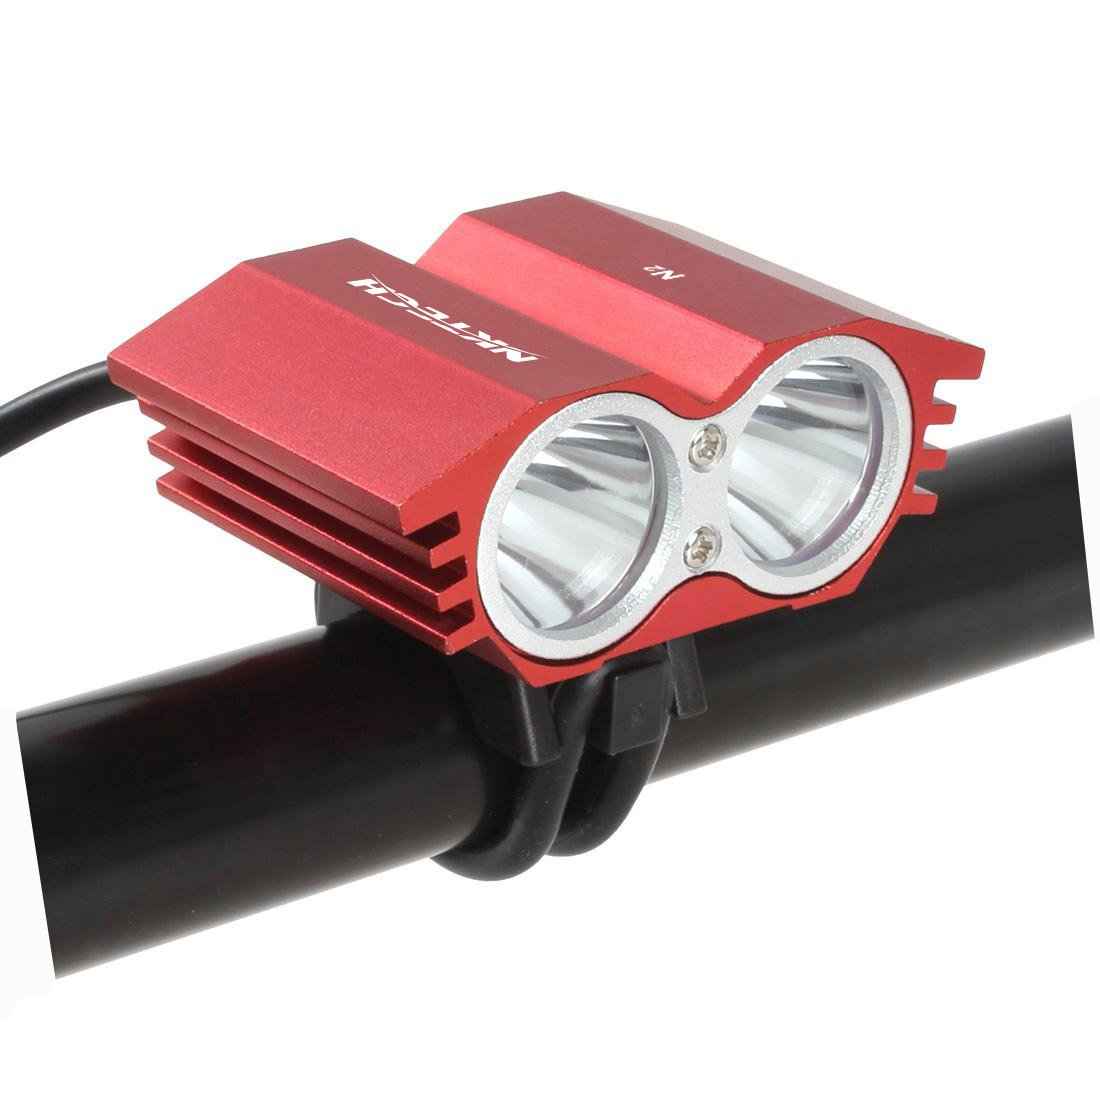 8.4V 1A Adapter X2 Upgrade Super Bright Waterproof Bicycle Headlight Fits All MTB Mountain and Road Bikes NKTECH N2 2X U2 LED Cycling Bike Bicycle Front Headlamp Headlight Lamp Light T6 Torch Power by 4X 18650 Battery Pack Cycling Safety Lights